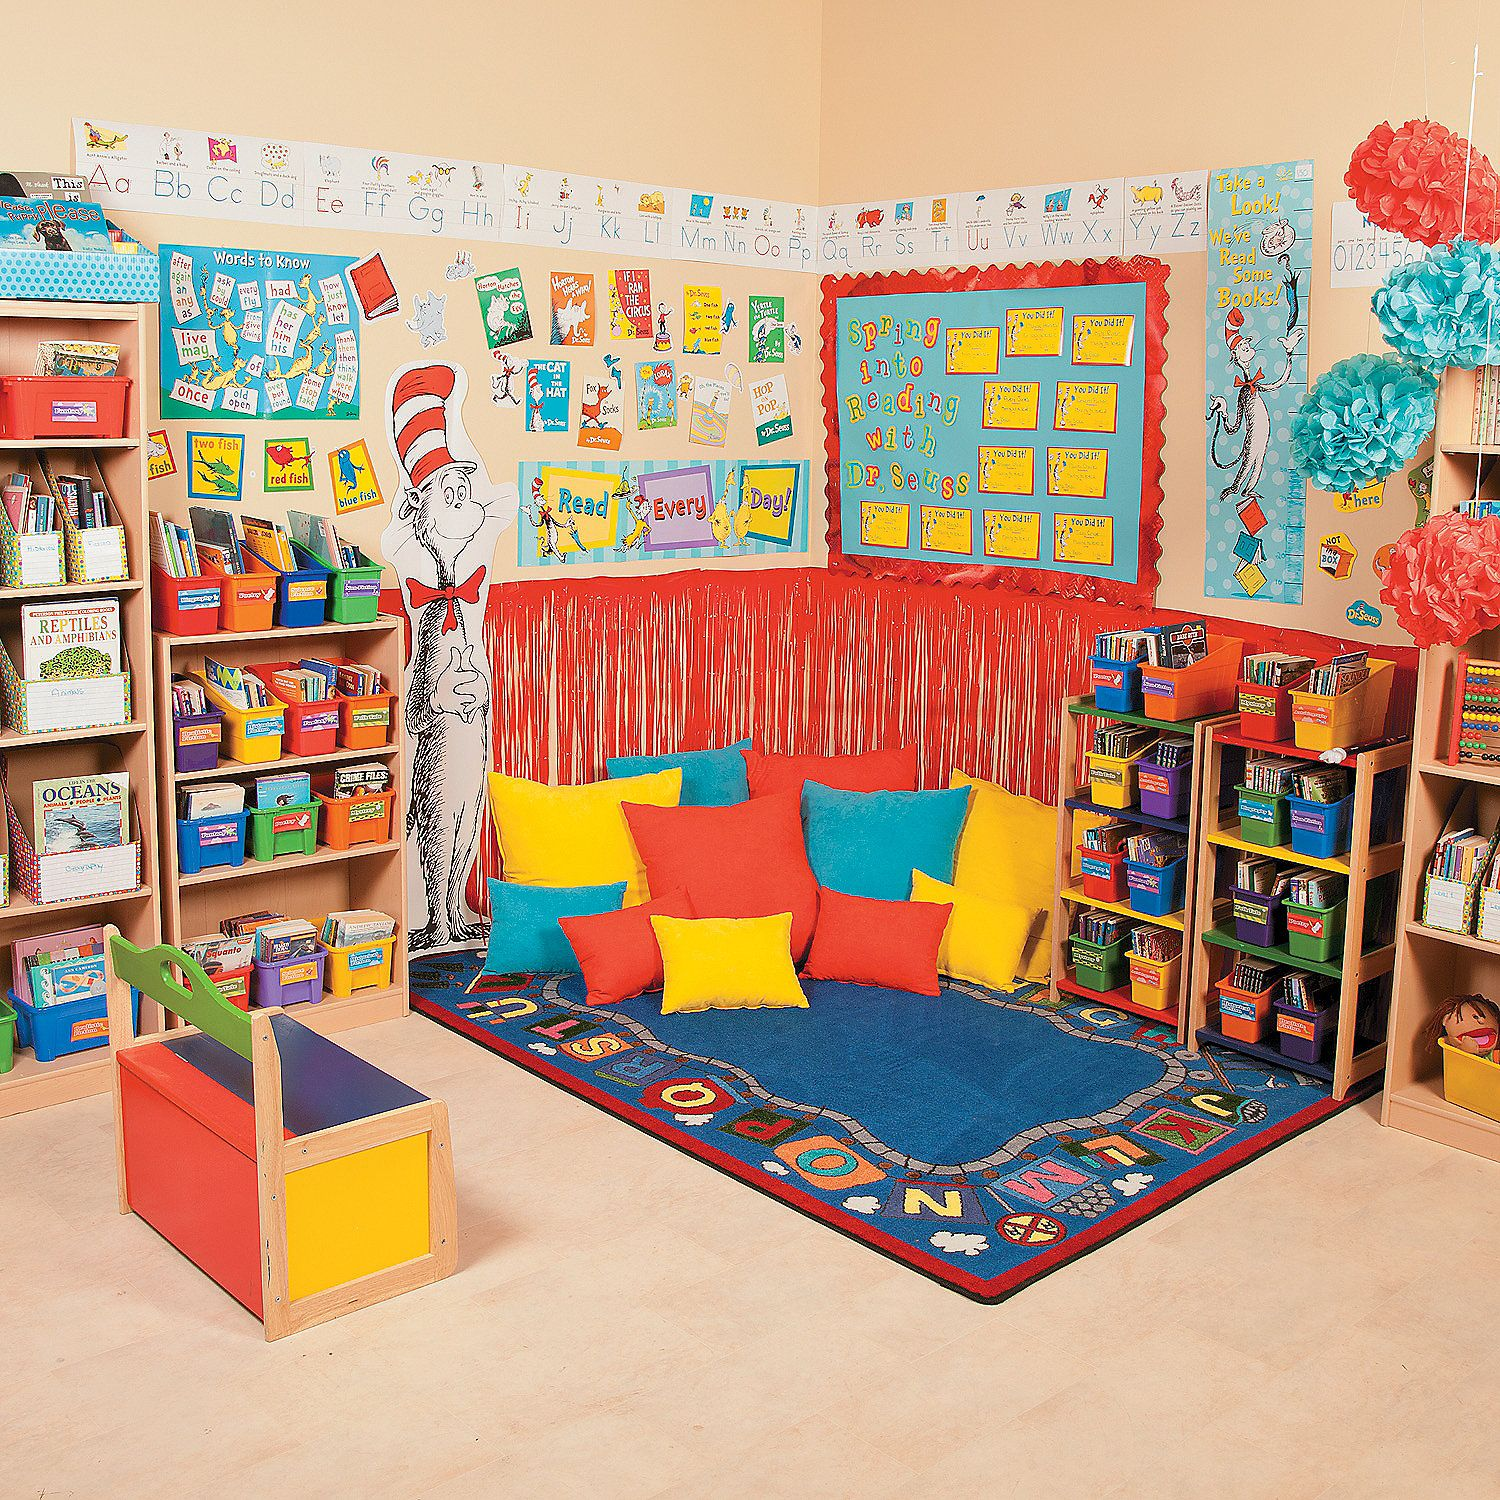 Dr Seuss Reading Corner Merchandise Available From